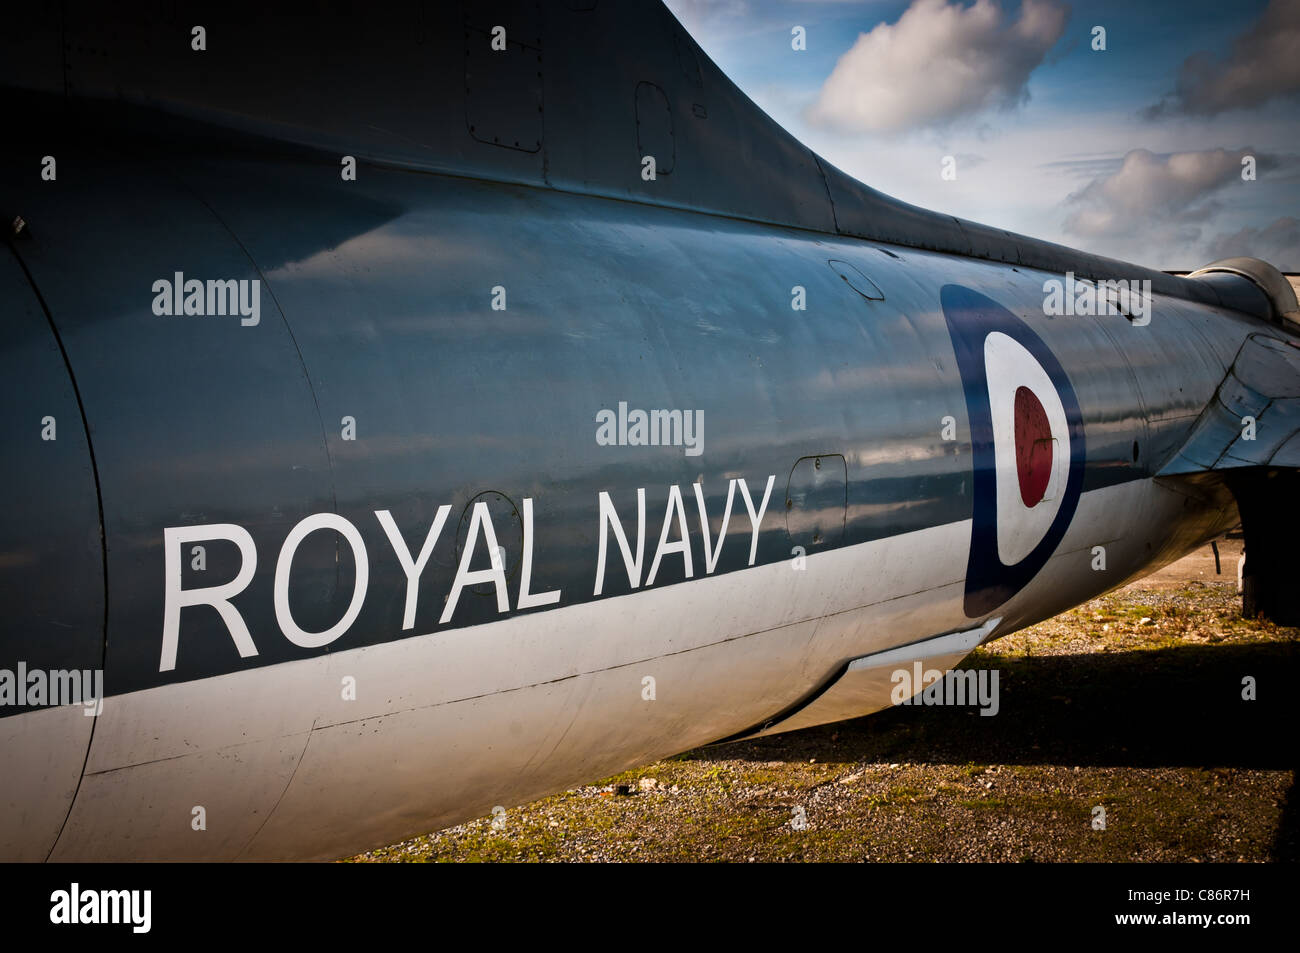 Fuselage from a Royal Navy jet plane - Stock Image